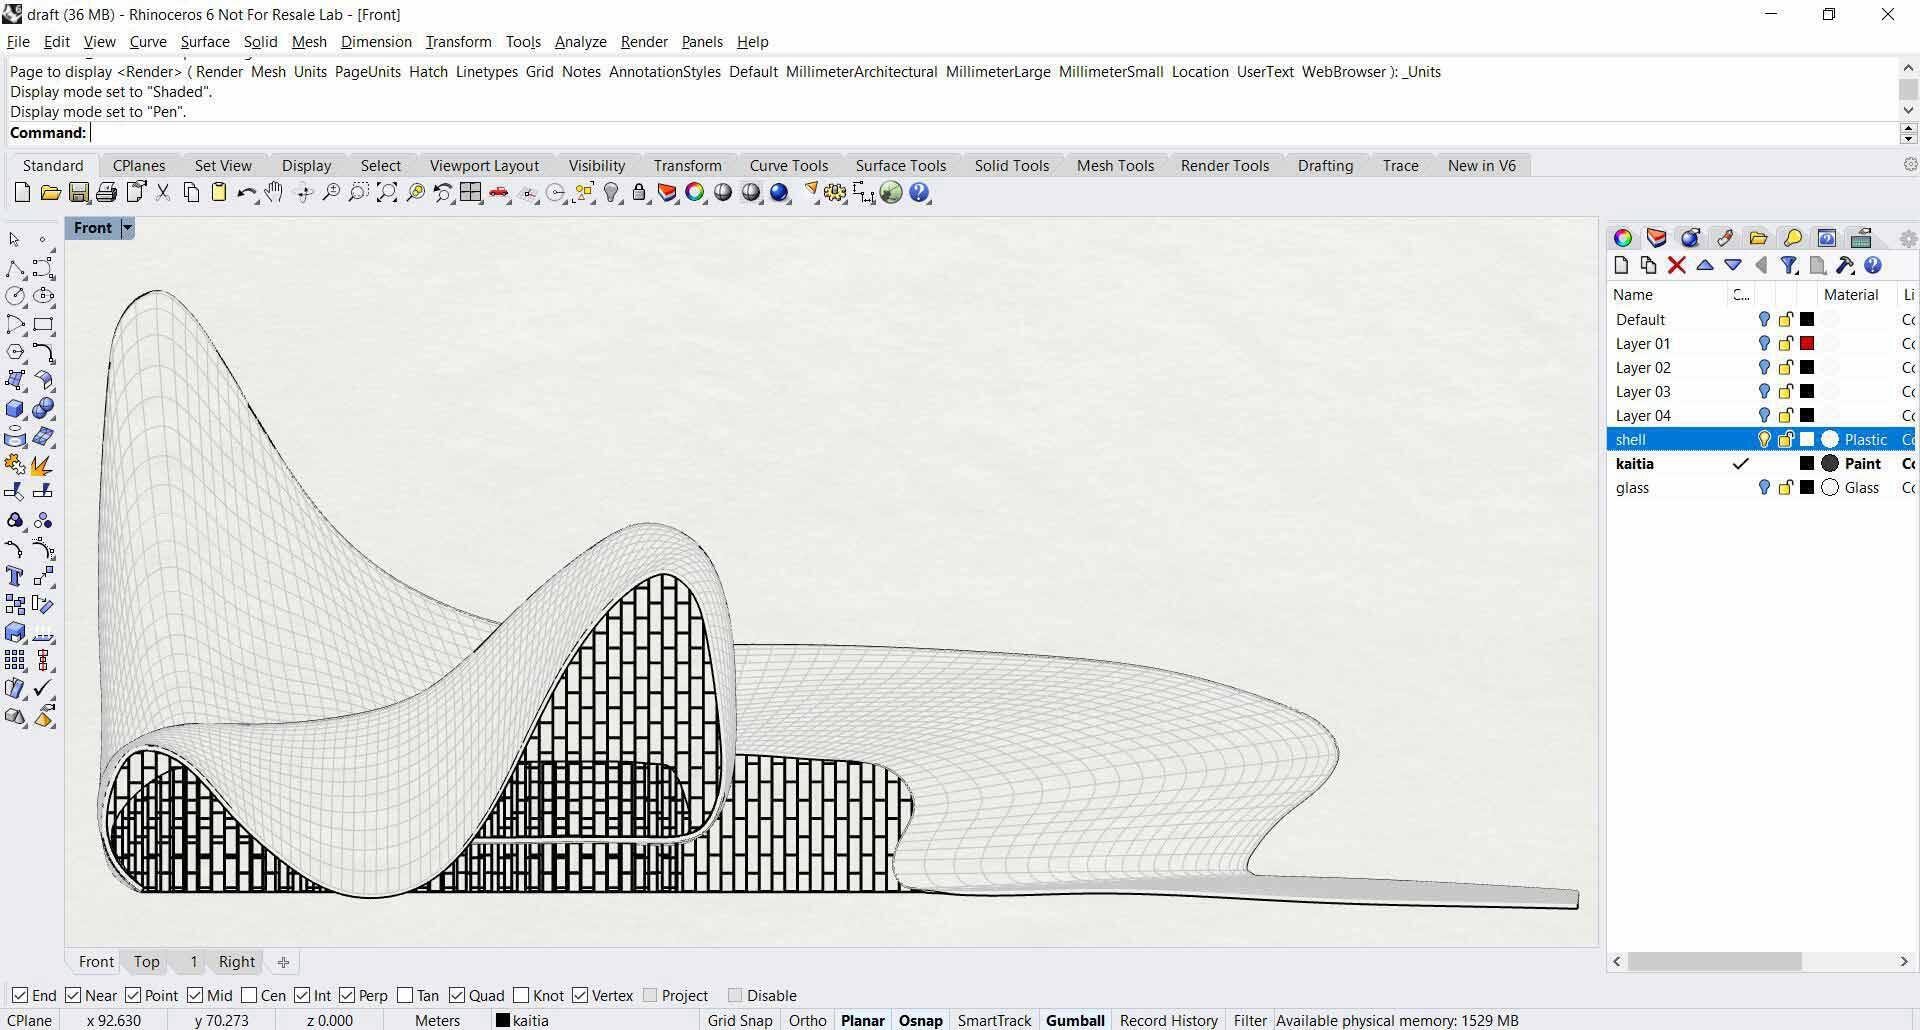 Heydar Aliyev Center - Rhino Lvl 1 - Decode Fab Lab